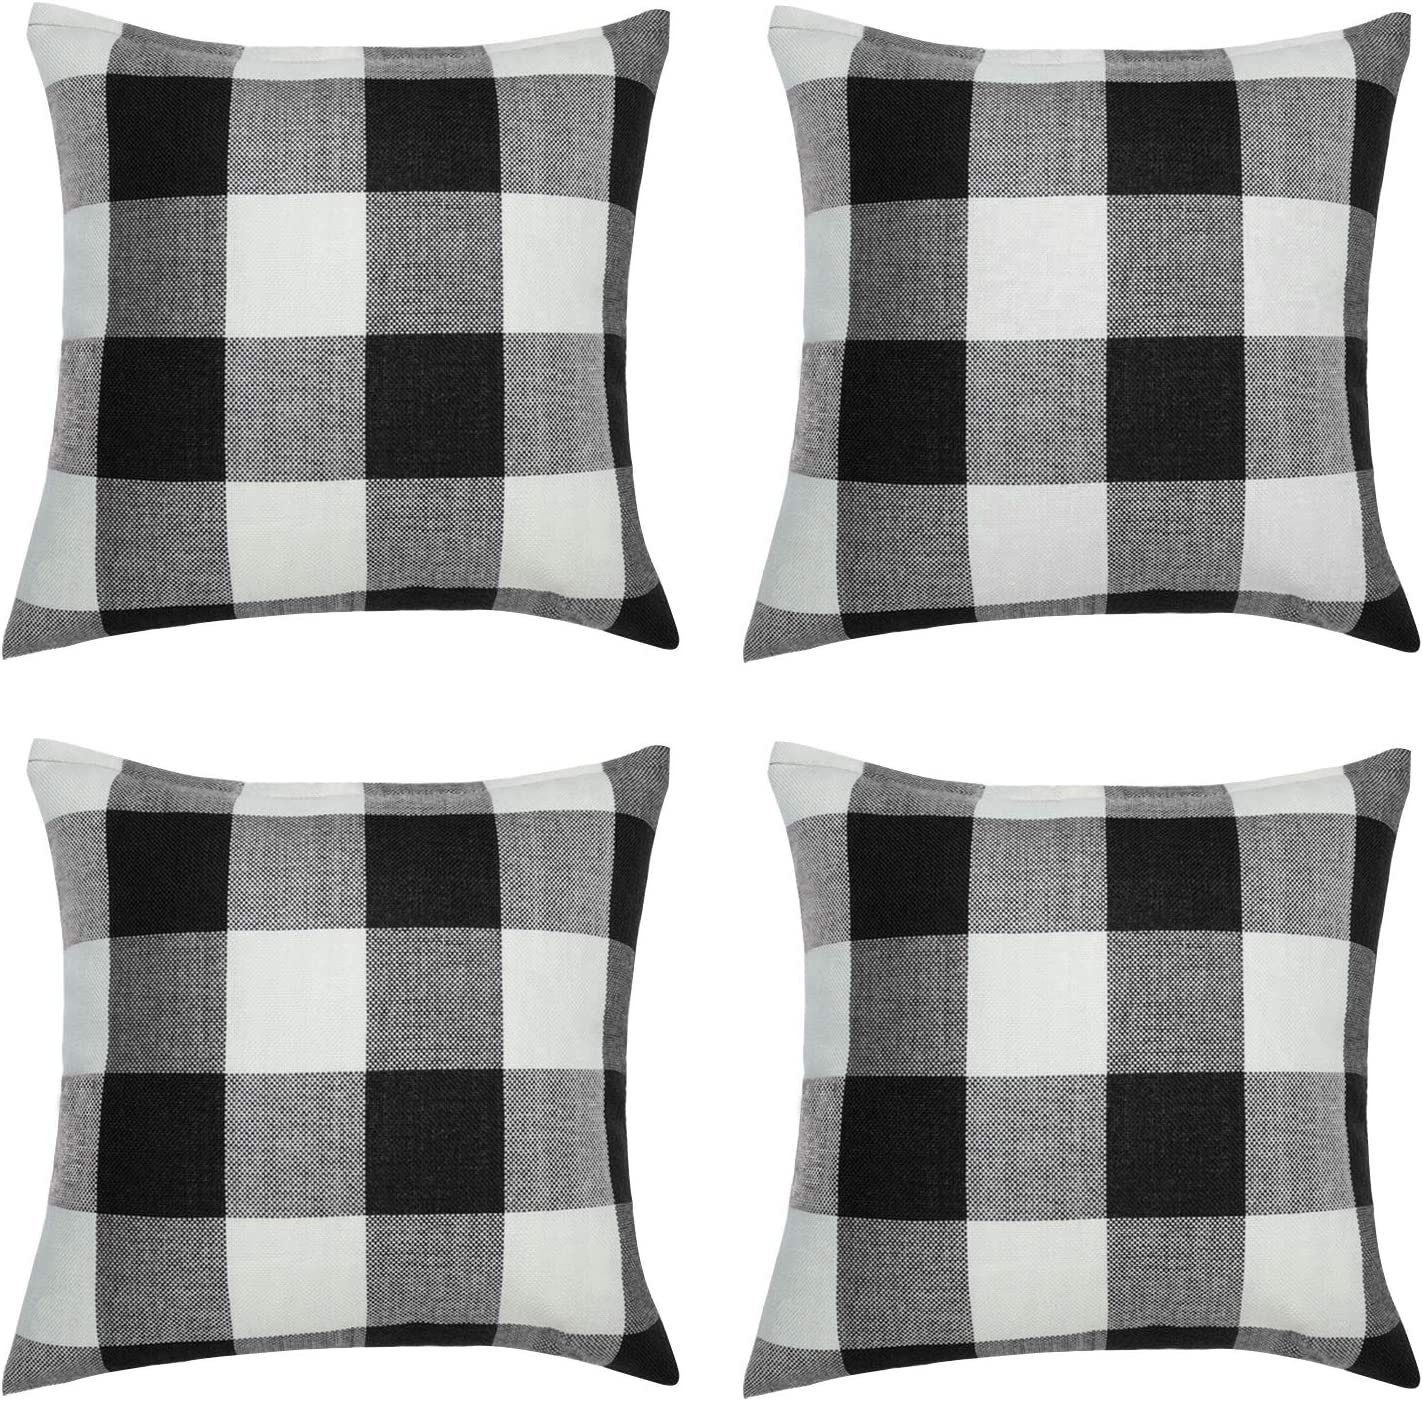 Aneco 4 Pack 18 x18 Inch Pillow Cover Buffalo Plaid Black White Check Plaid Cushion Classic Tartan Linen Pillow Cover Sofa Bedroom Car